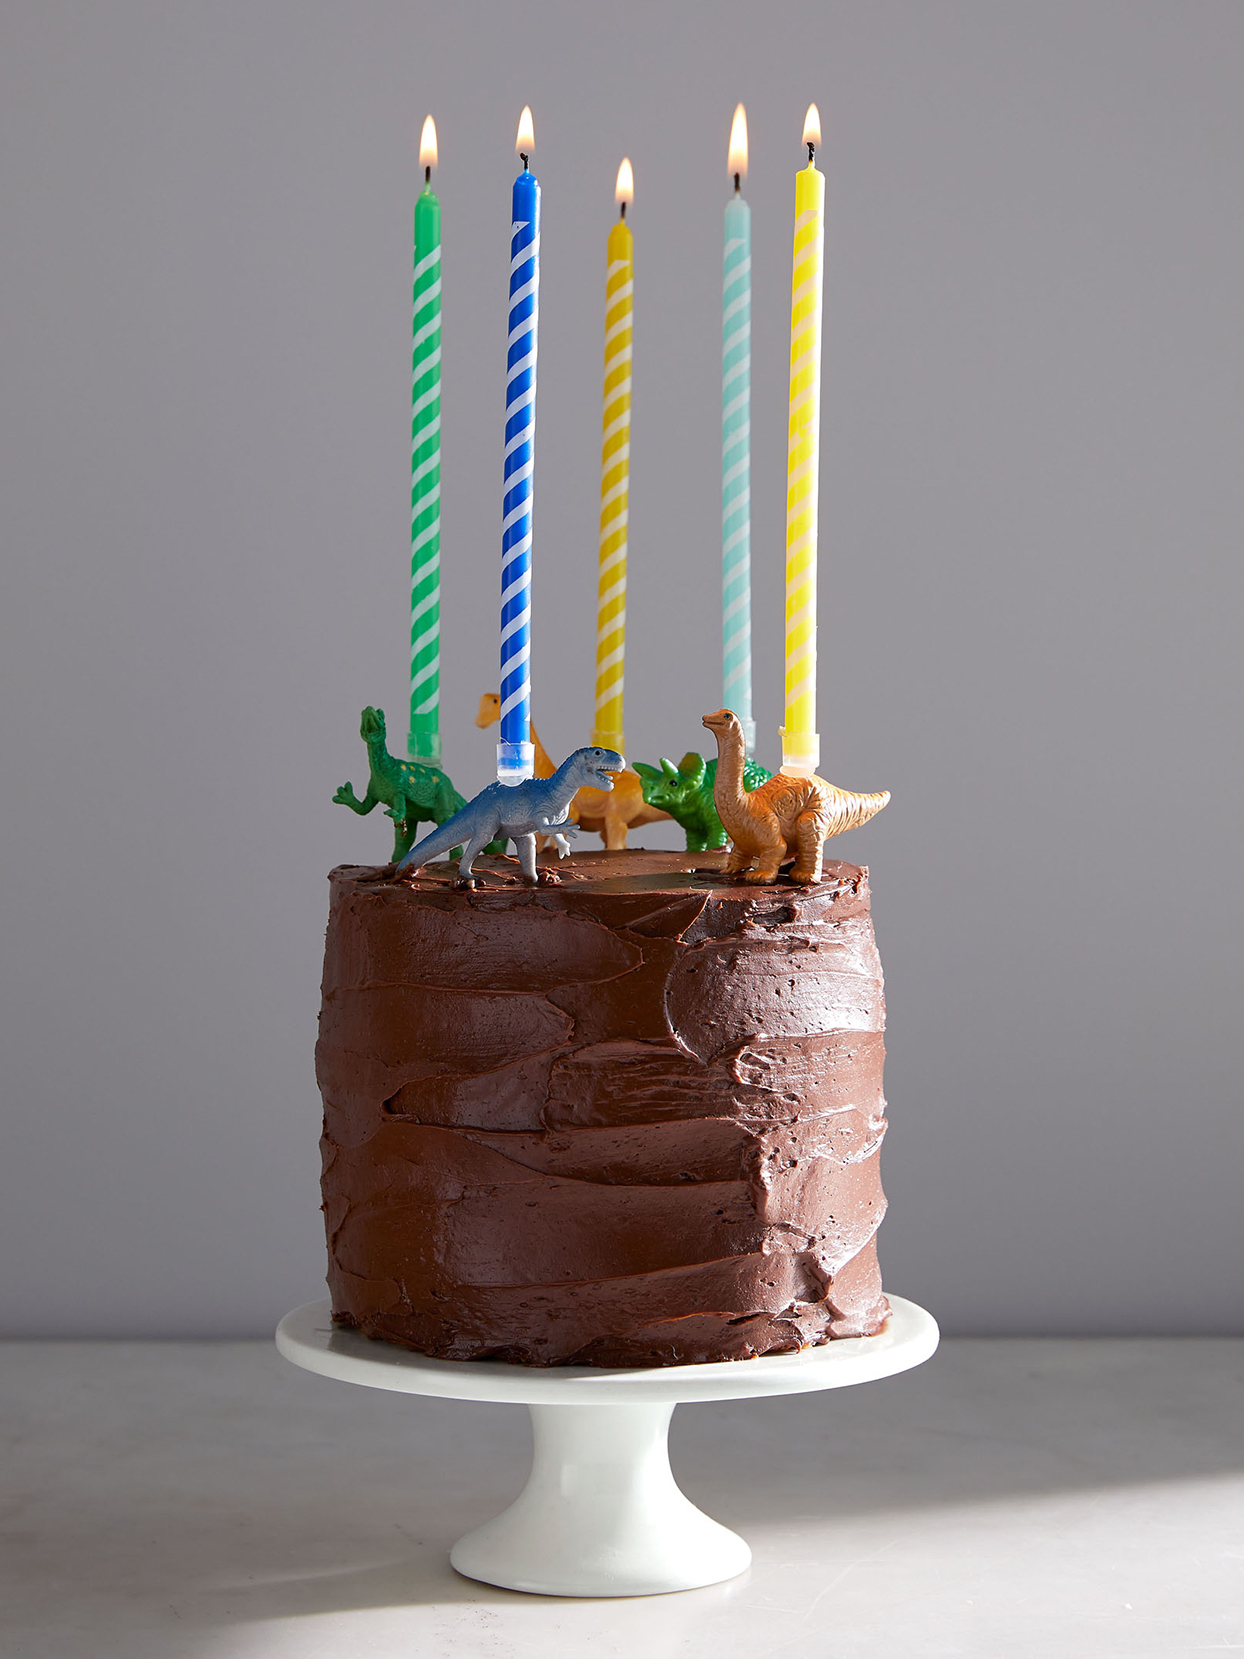 chocolate birthday cake decorated with candles and dinosaurs